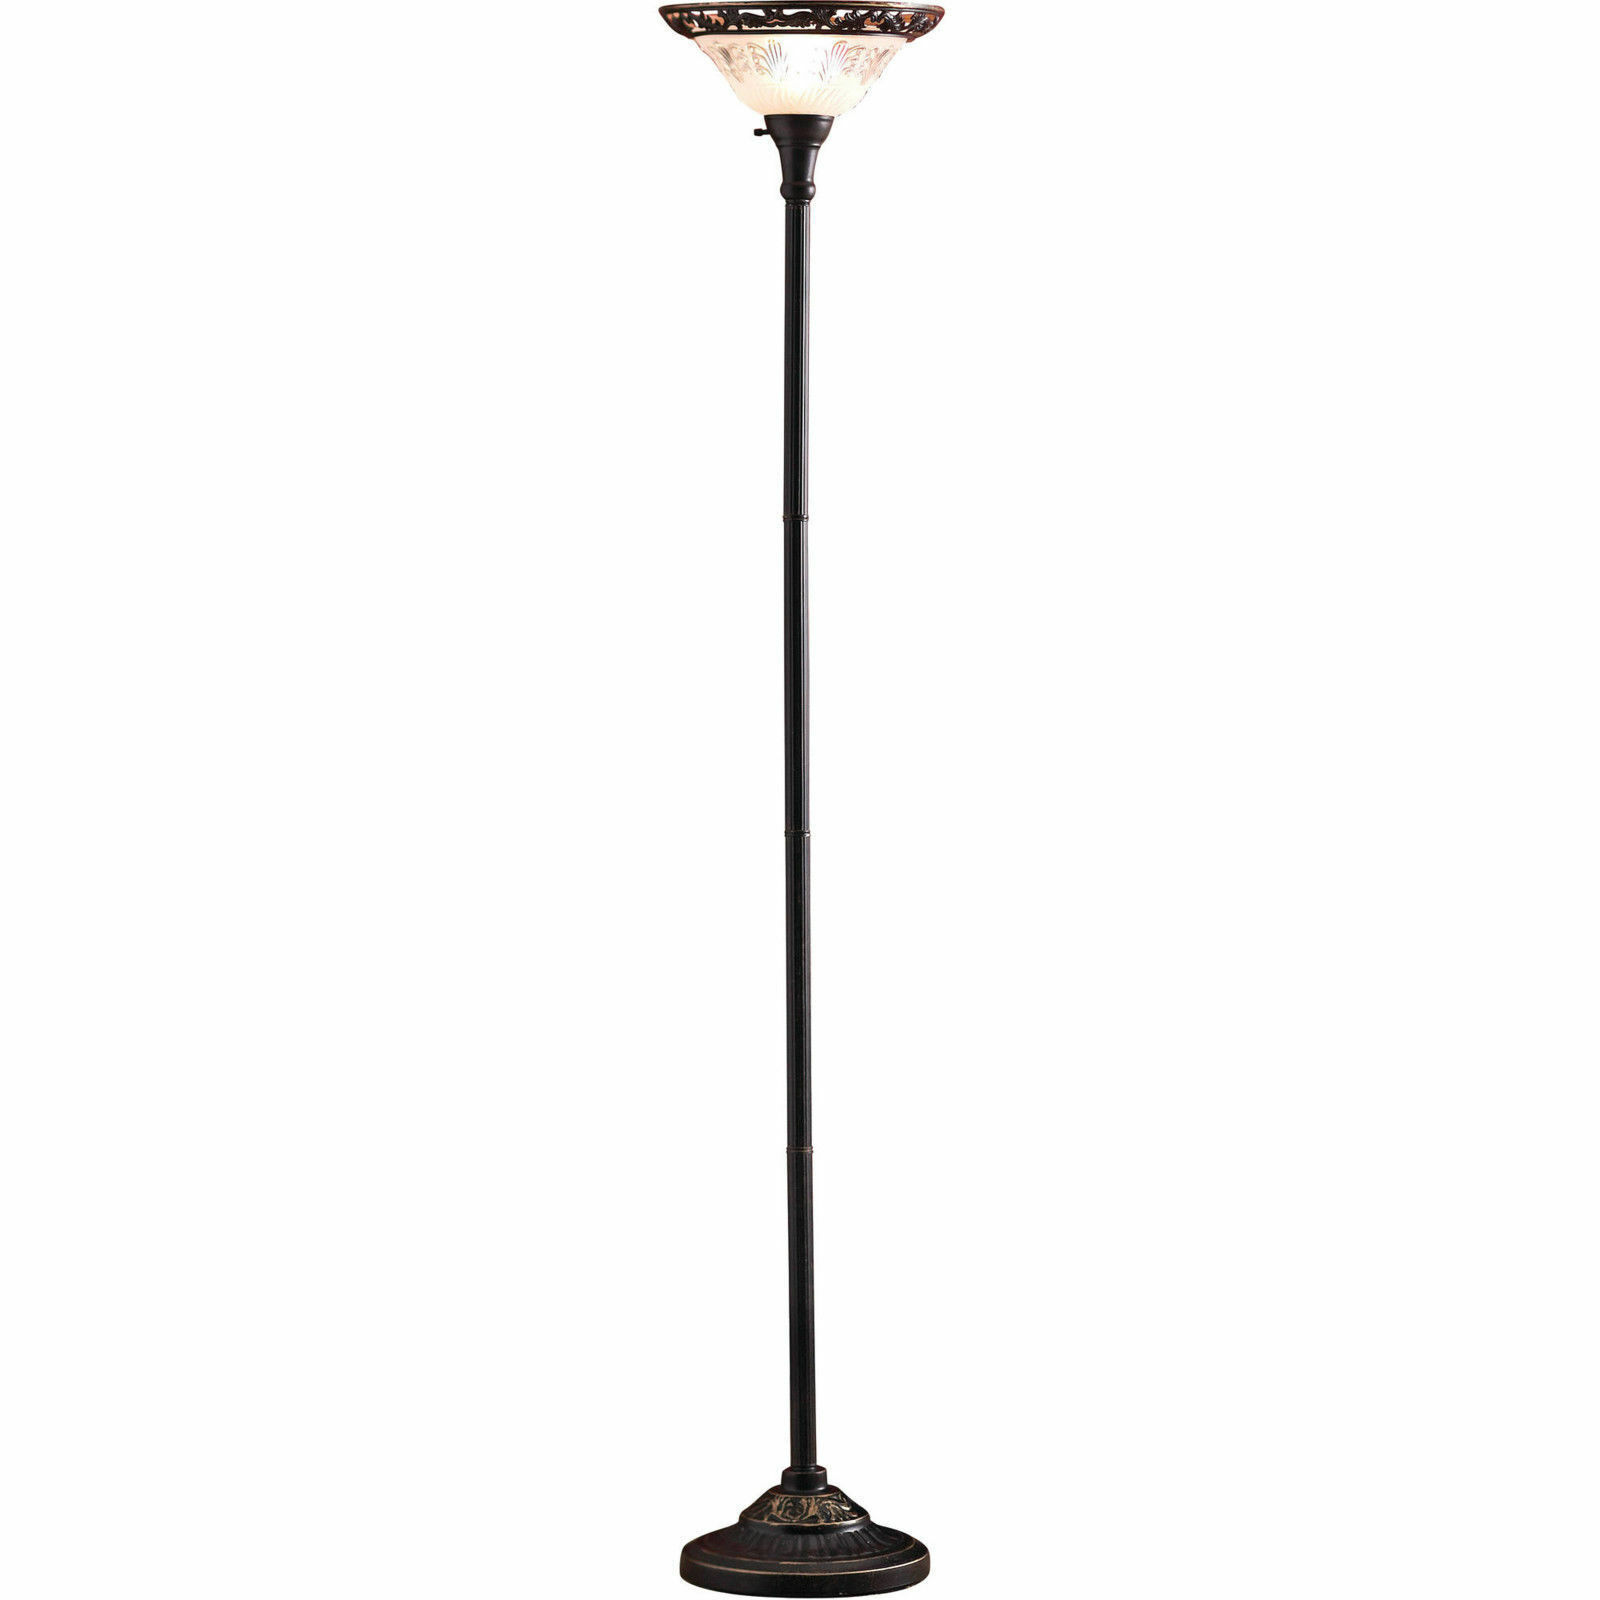 Victorian Tiffany Style Torchiere Lamp Torch Floor